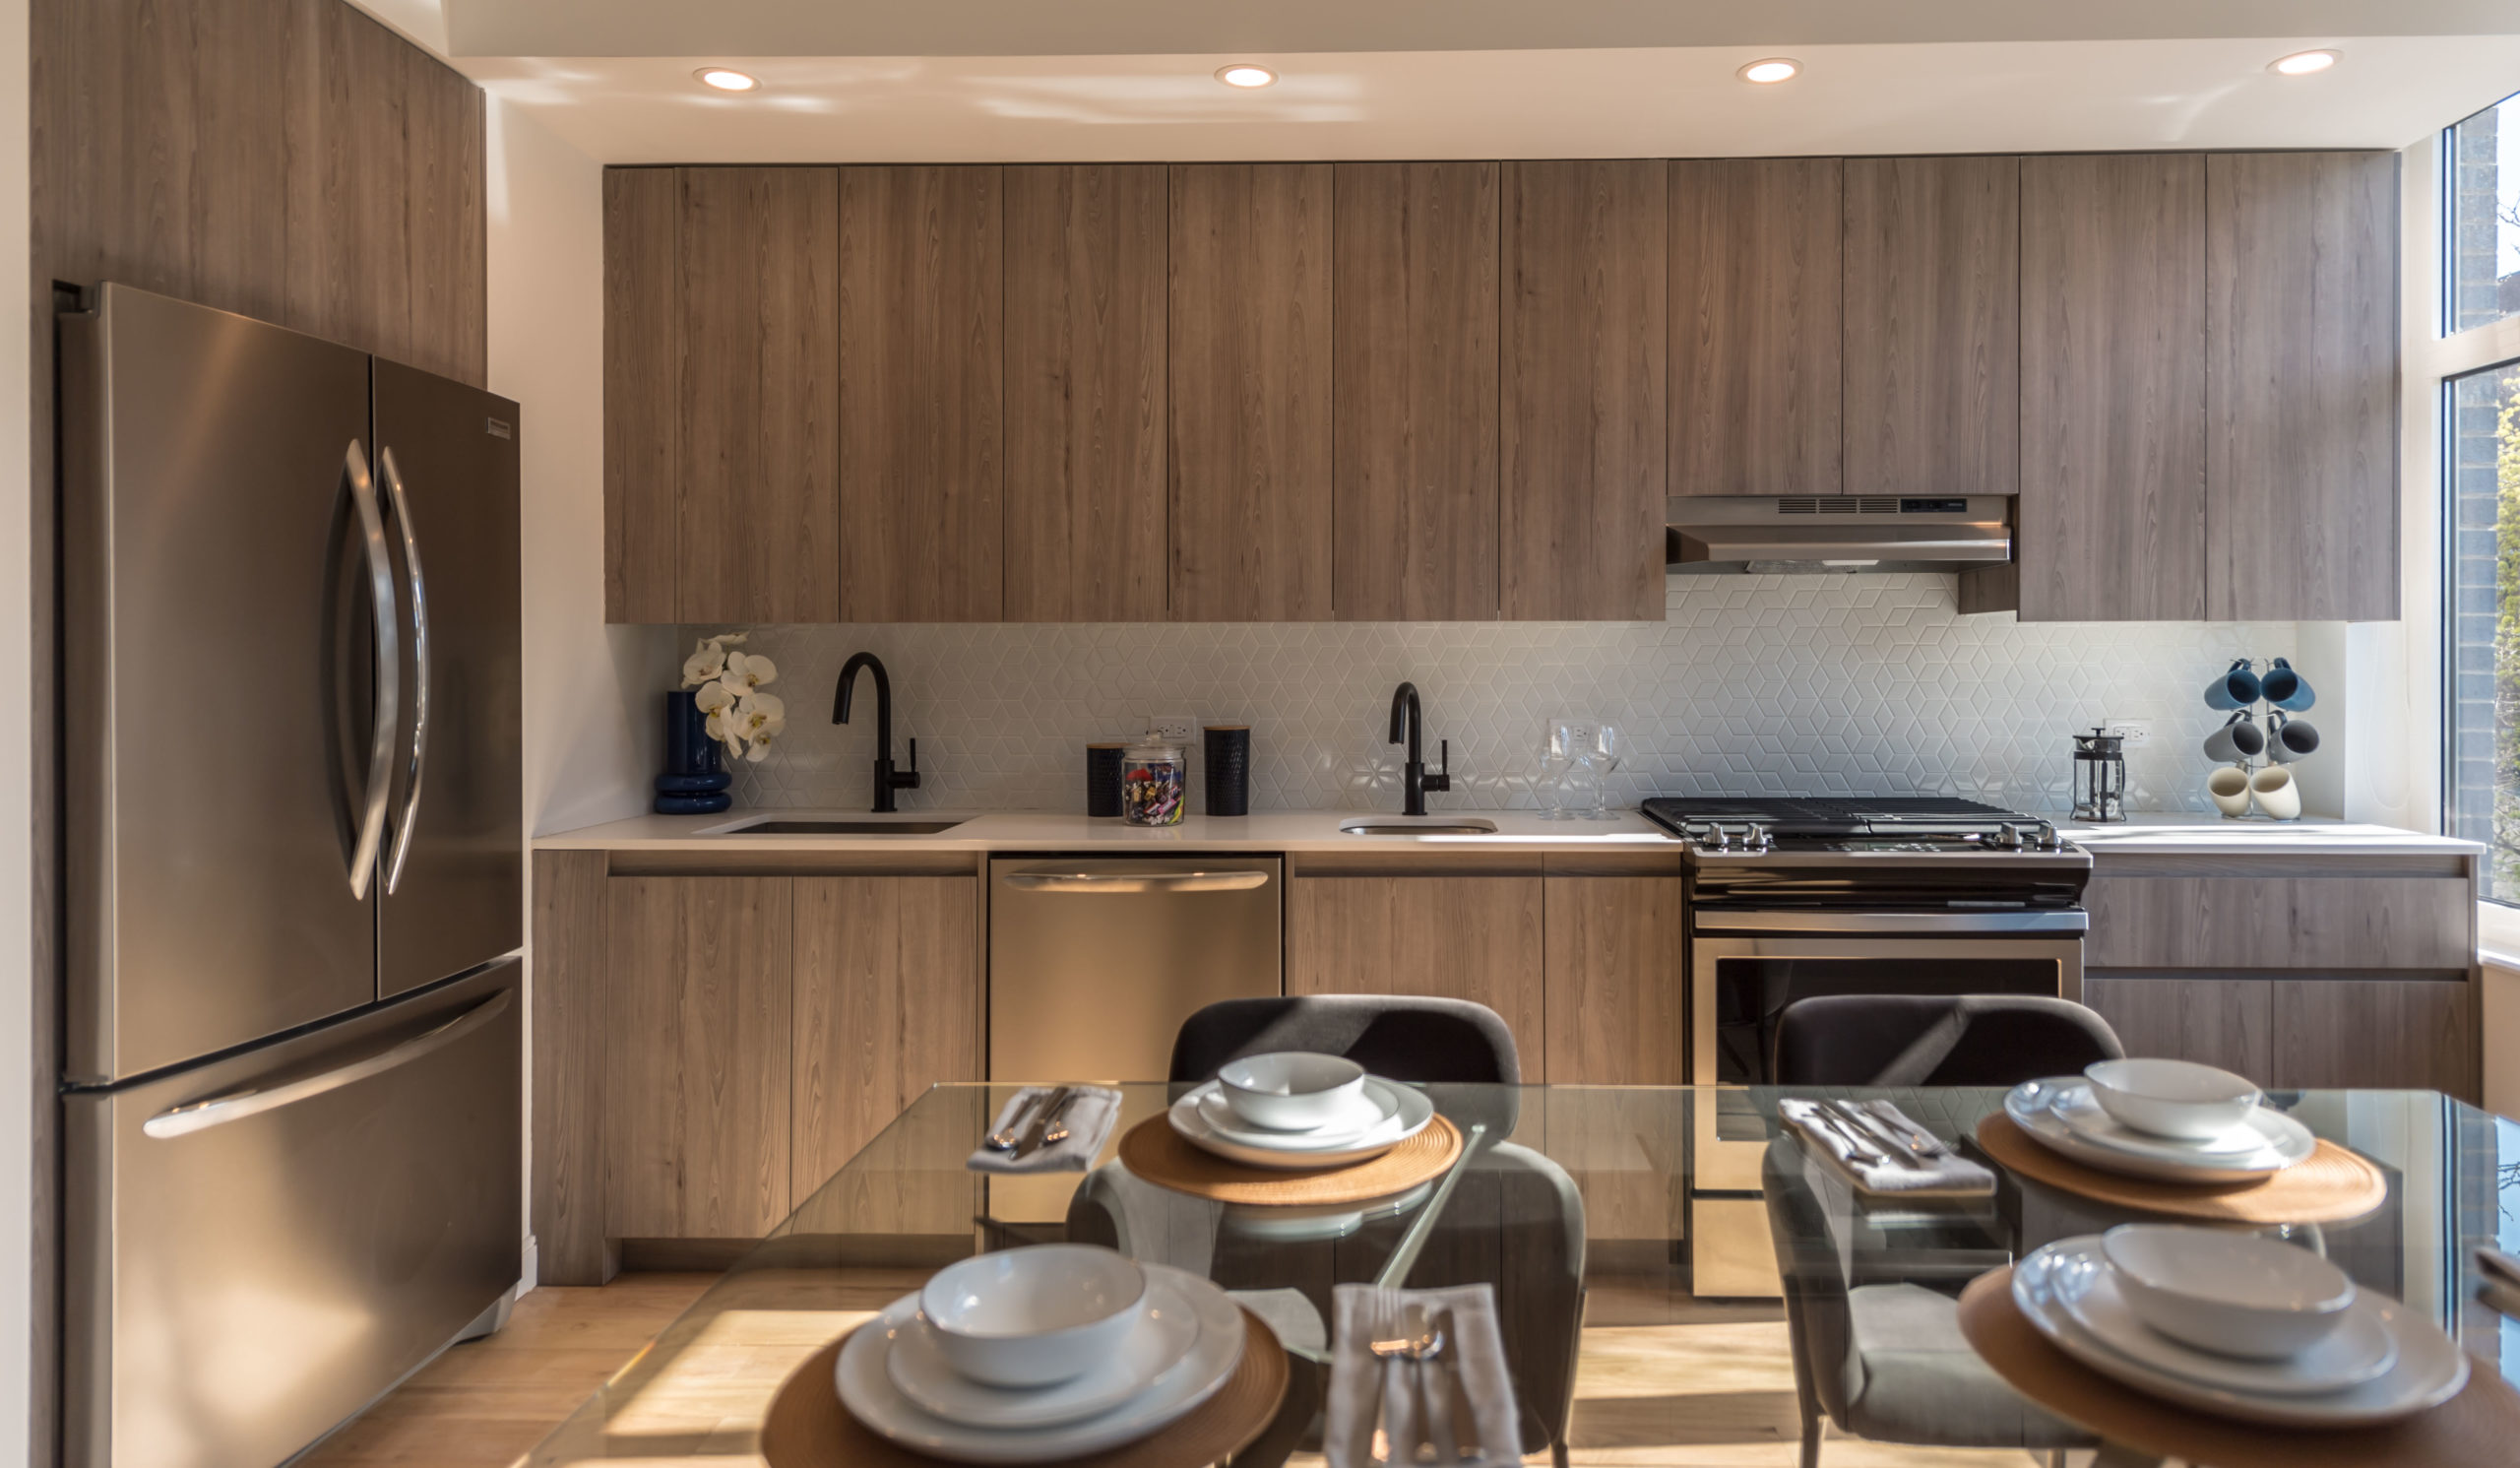 A large kitchen with stainless steel appliances at The Vitagraph Apartments in Brooklyn